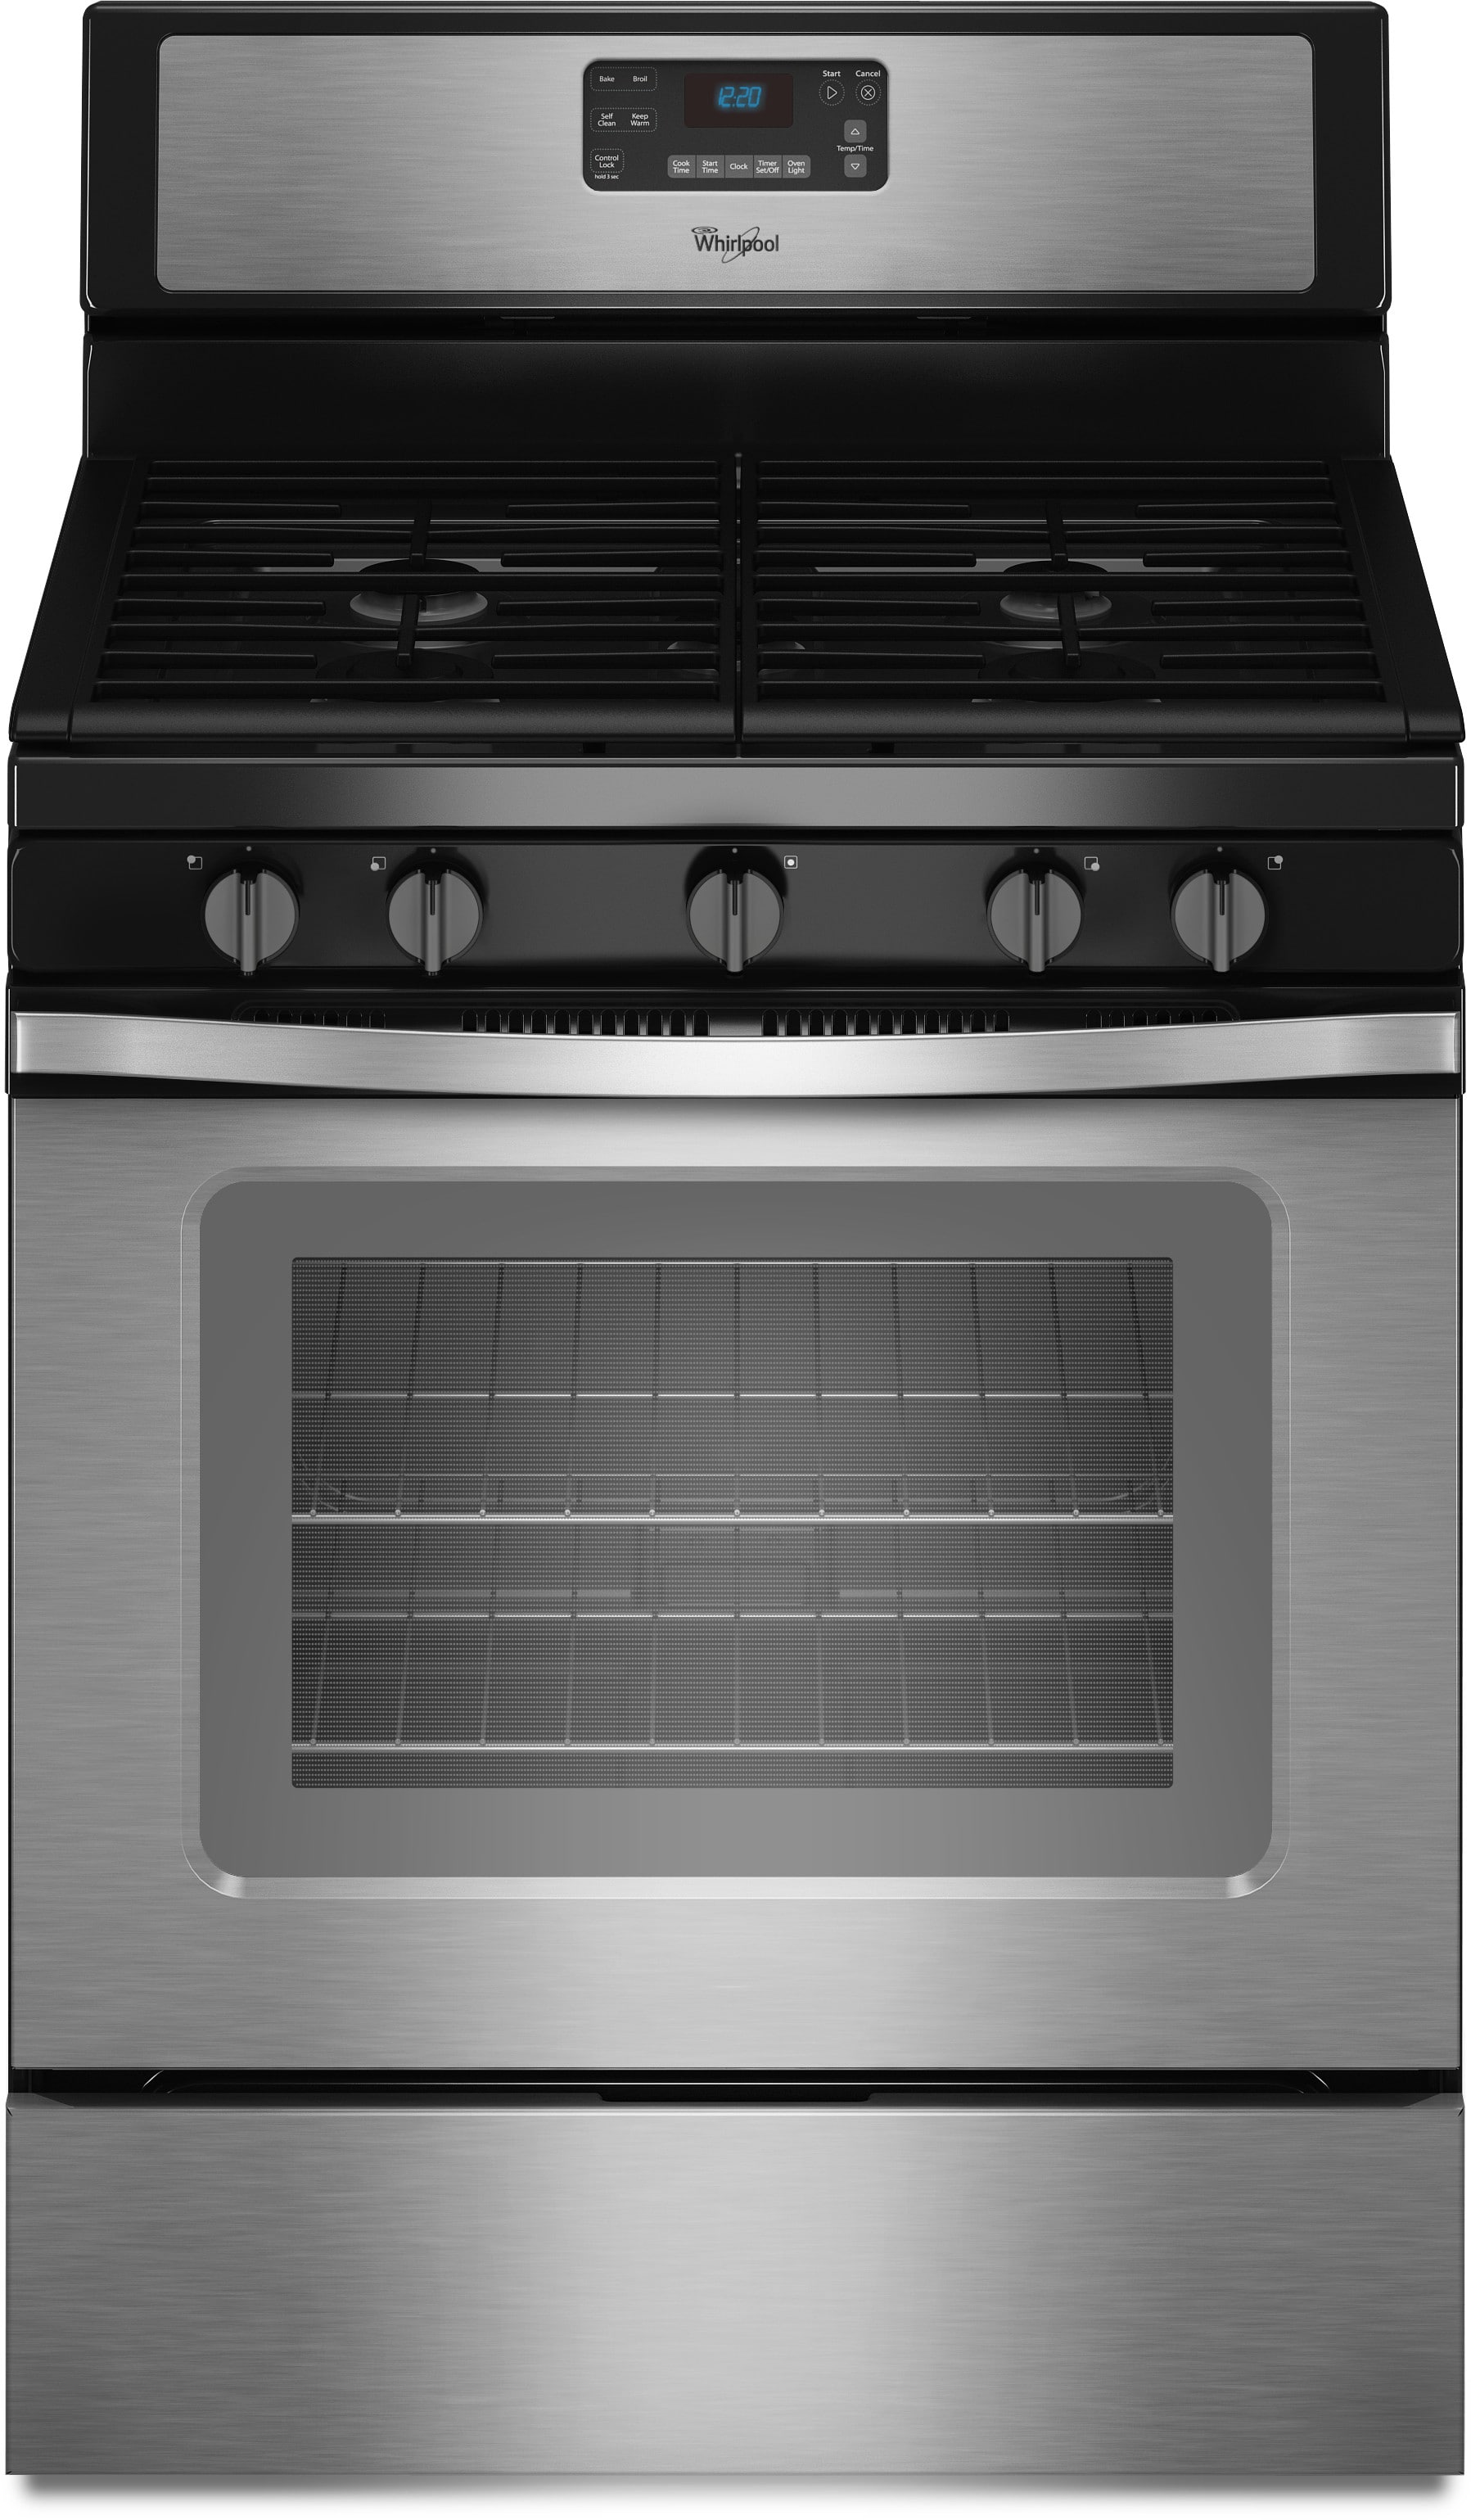 whirlpool wfg530s0es 30 inch freestanding gas range with convection speedheat burners self. Black Bedroom Furniture Sets. Home Design Ideas